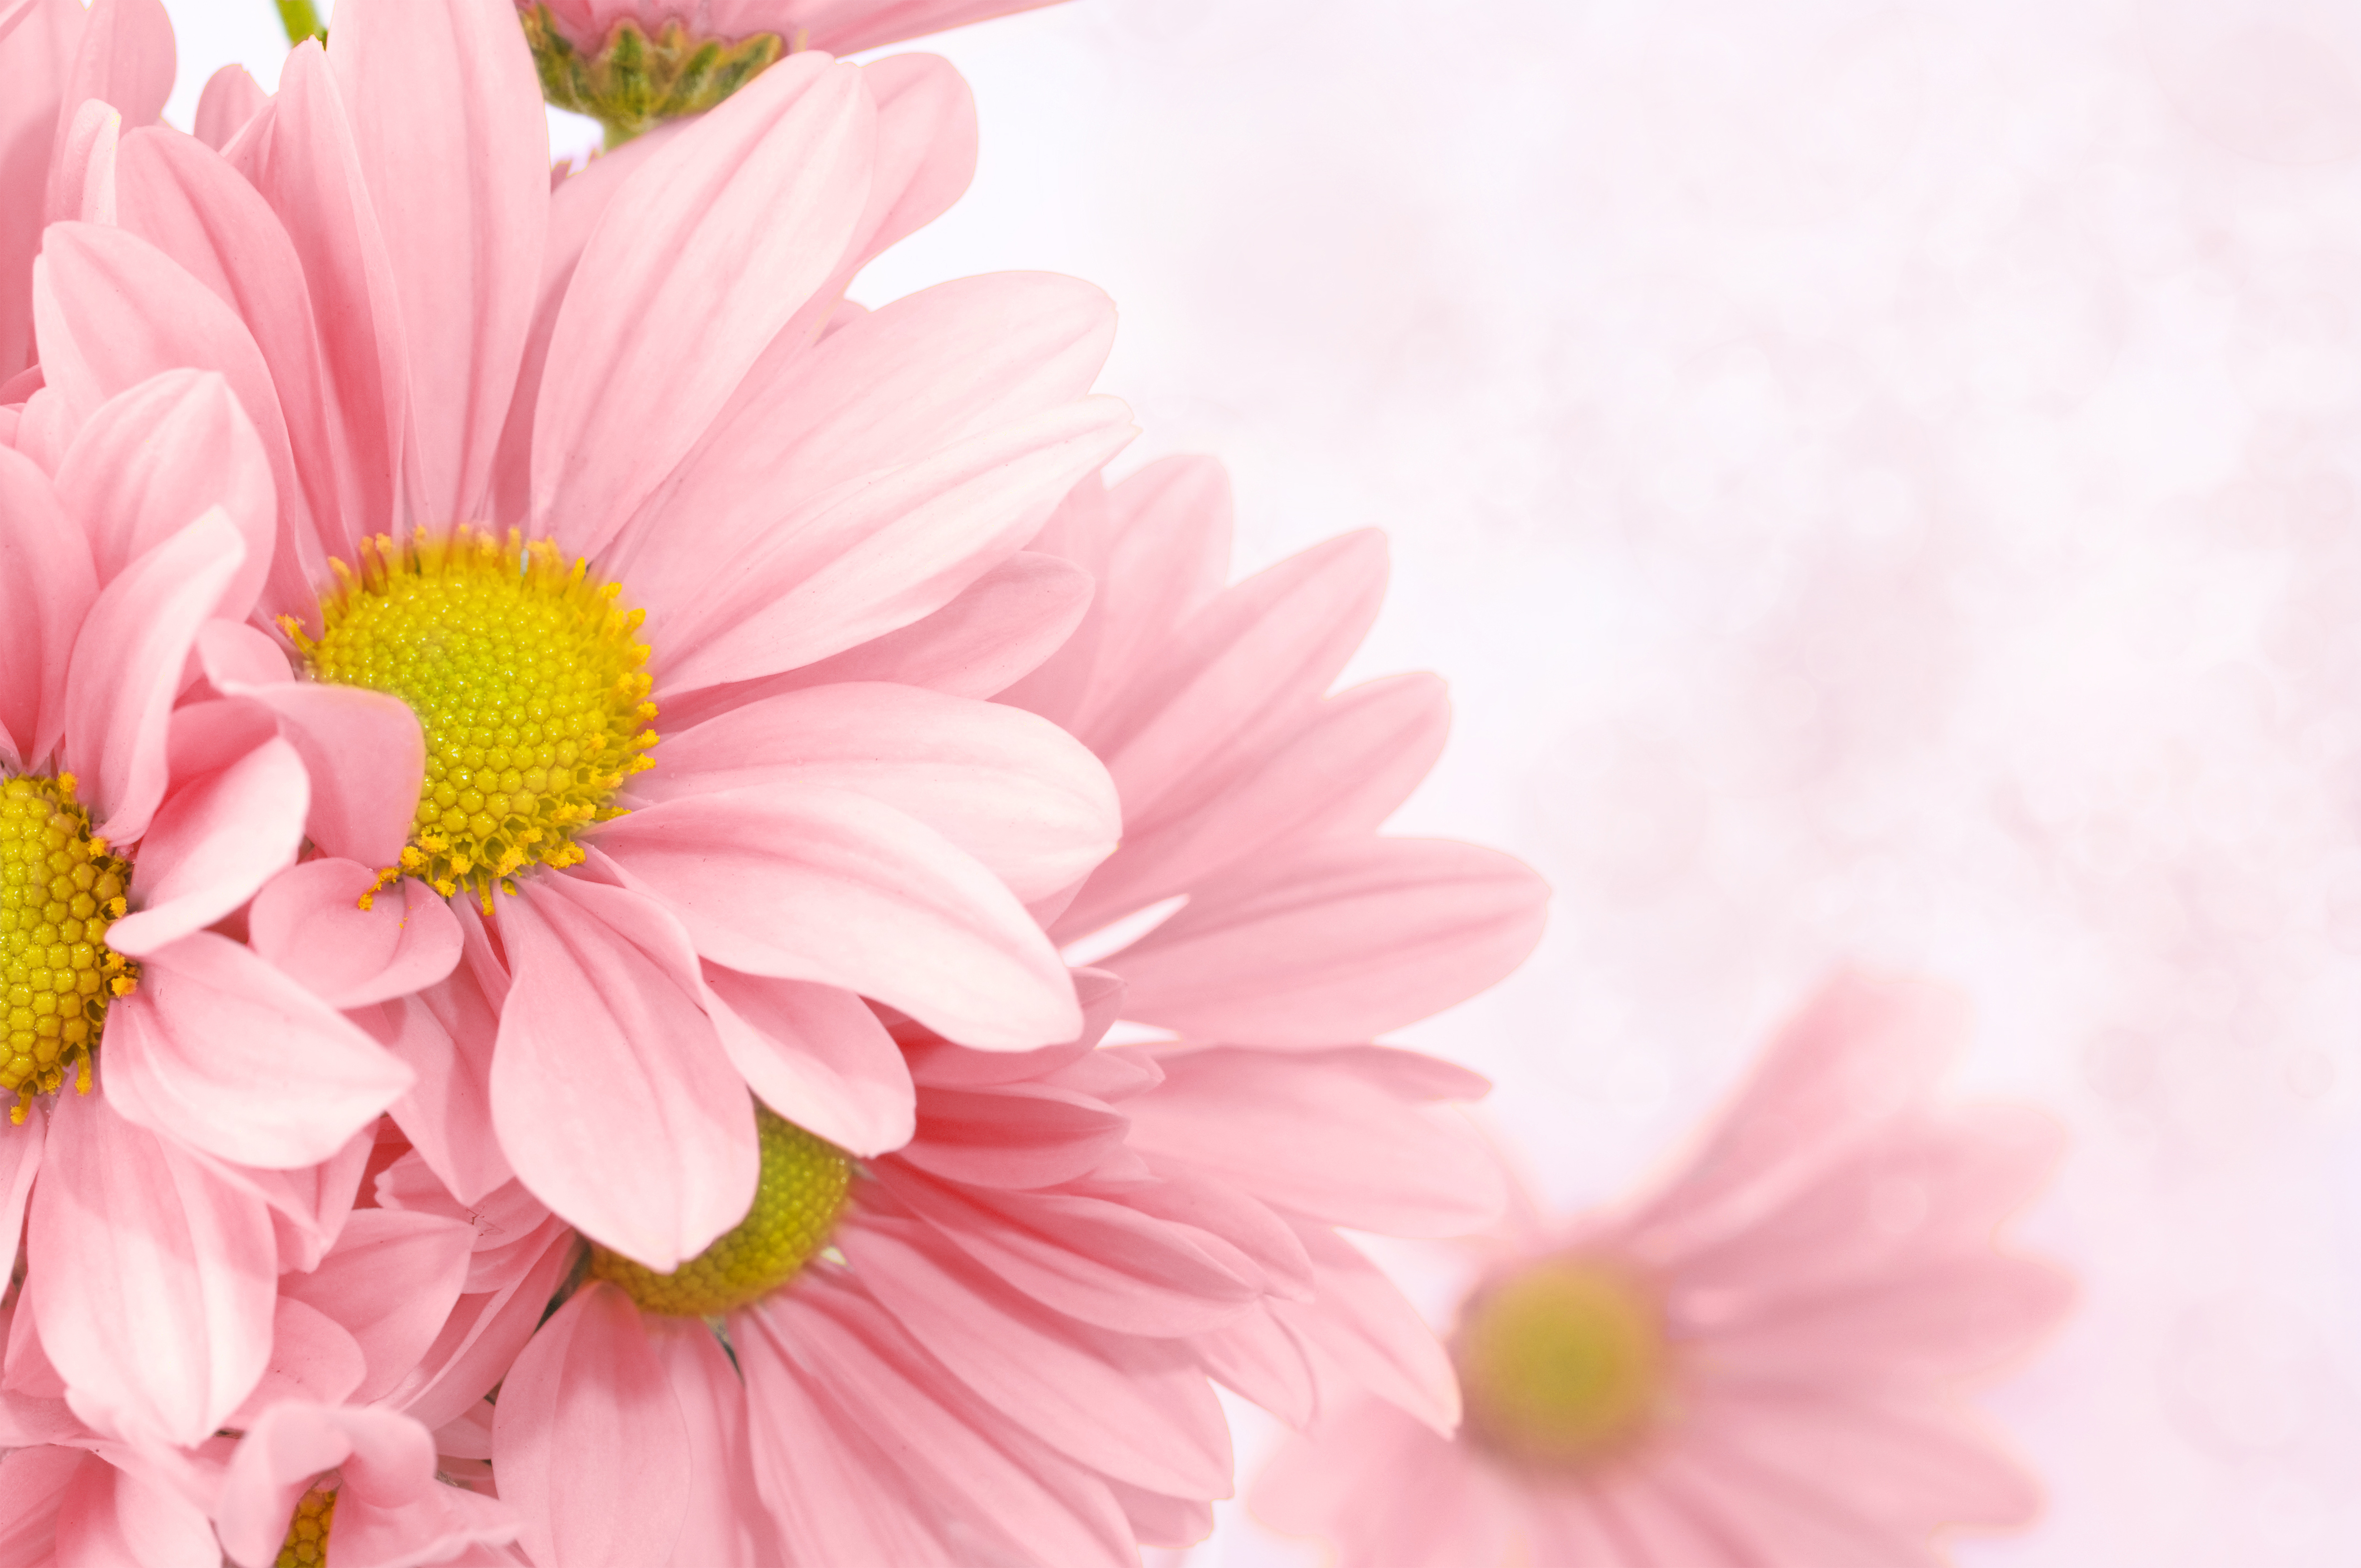 Cute Roses Wallpapers Download Soft Pink Floral Background Gallery Yopriceville High